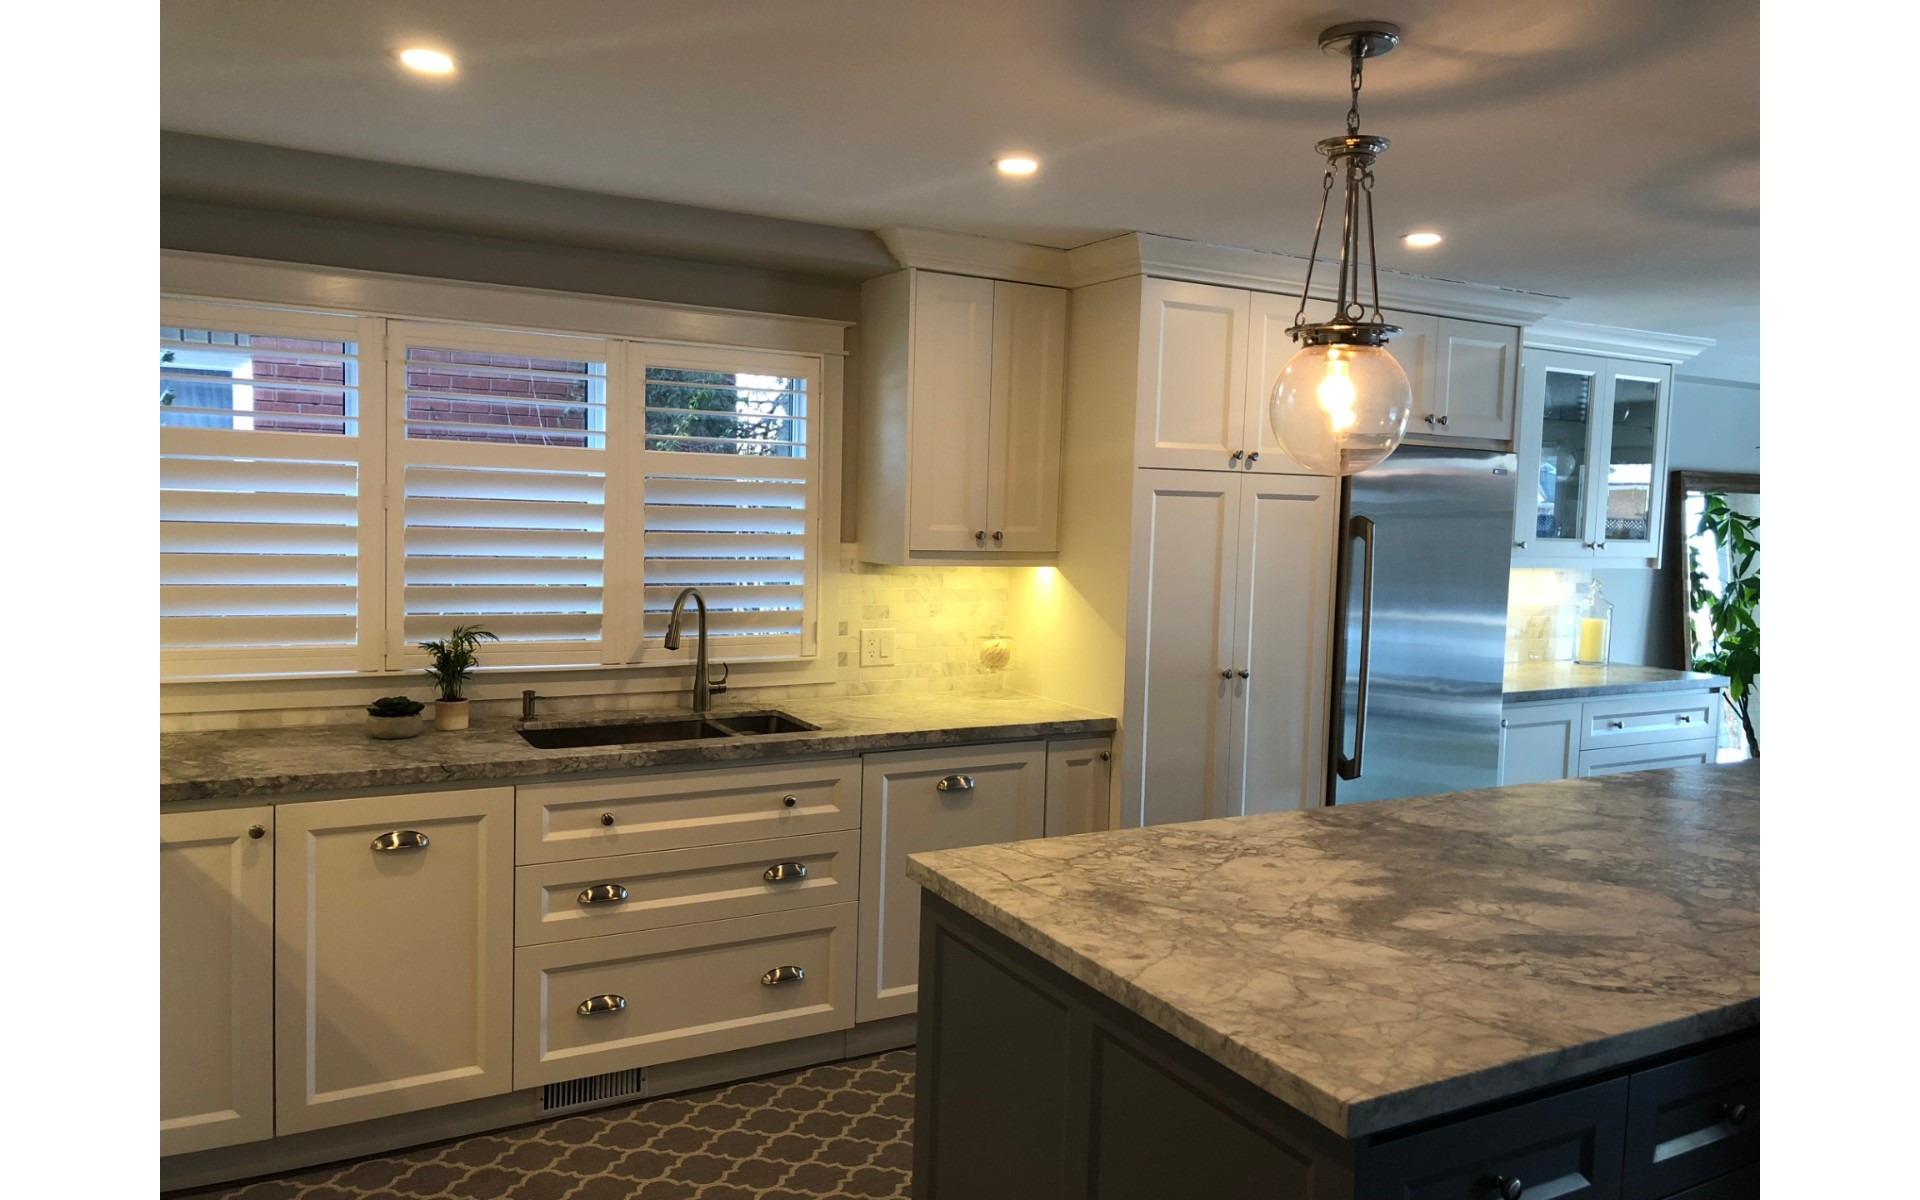 Kitchen with white cabinets, dark patterned floor and stone countertop